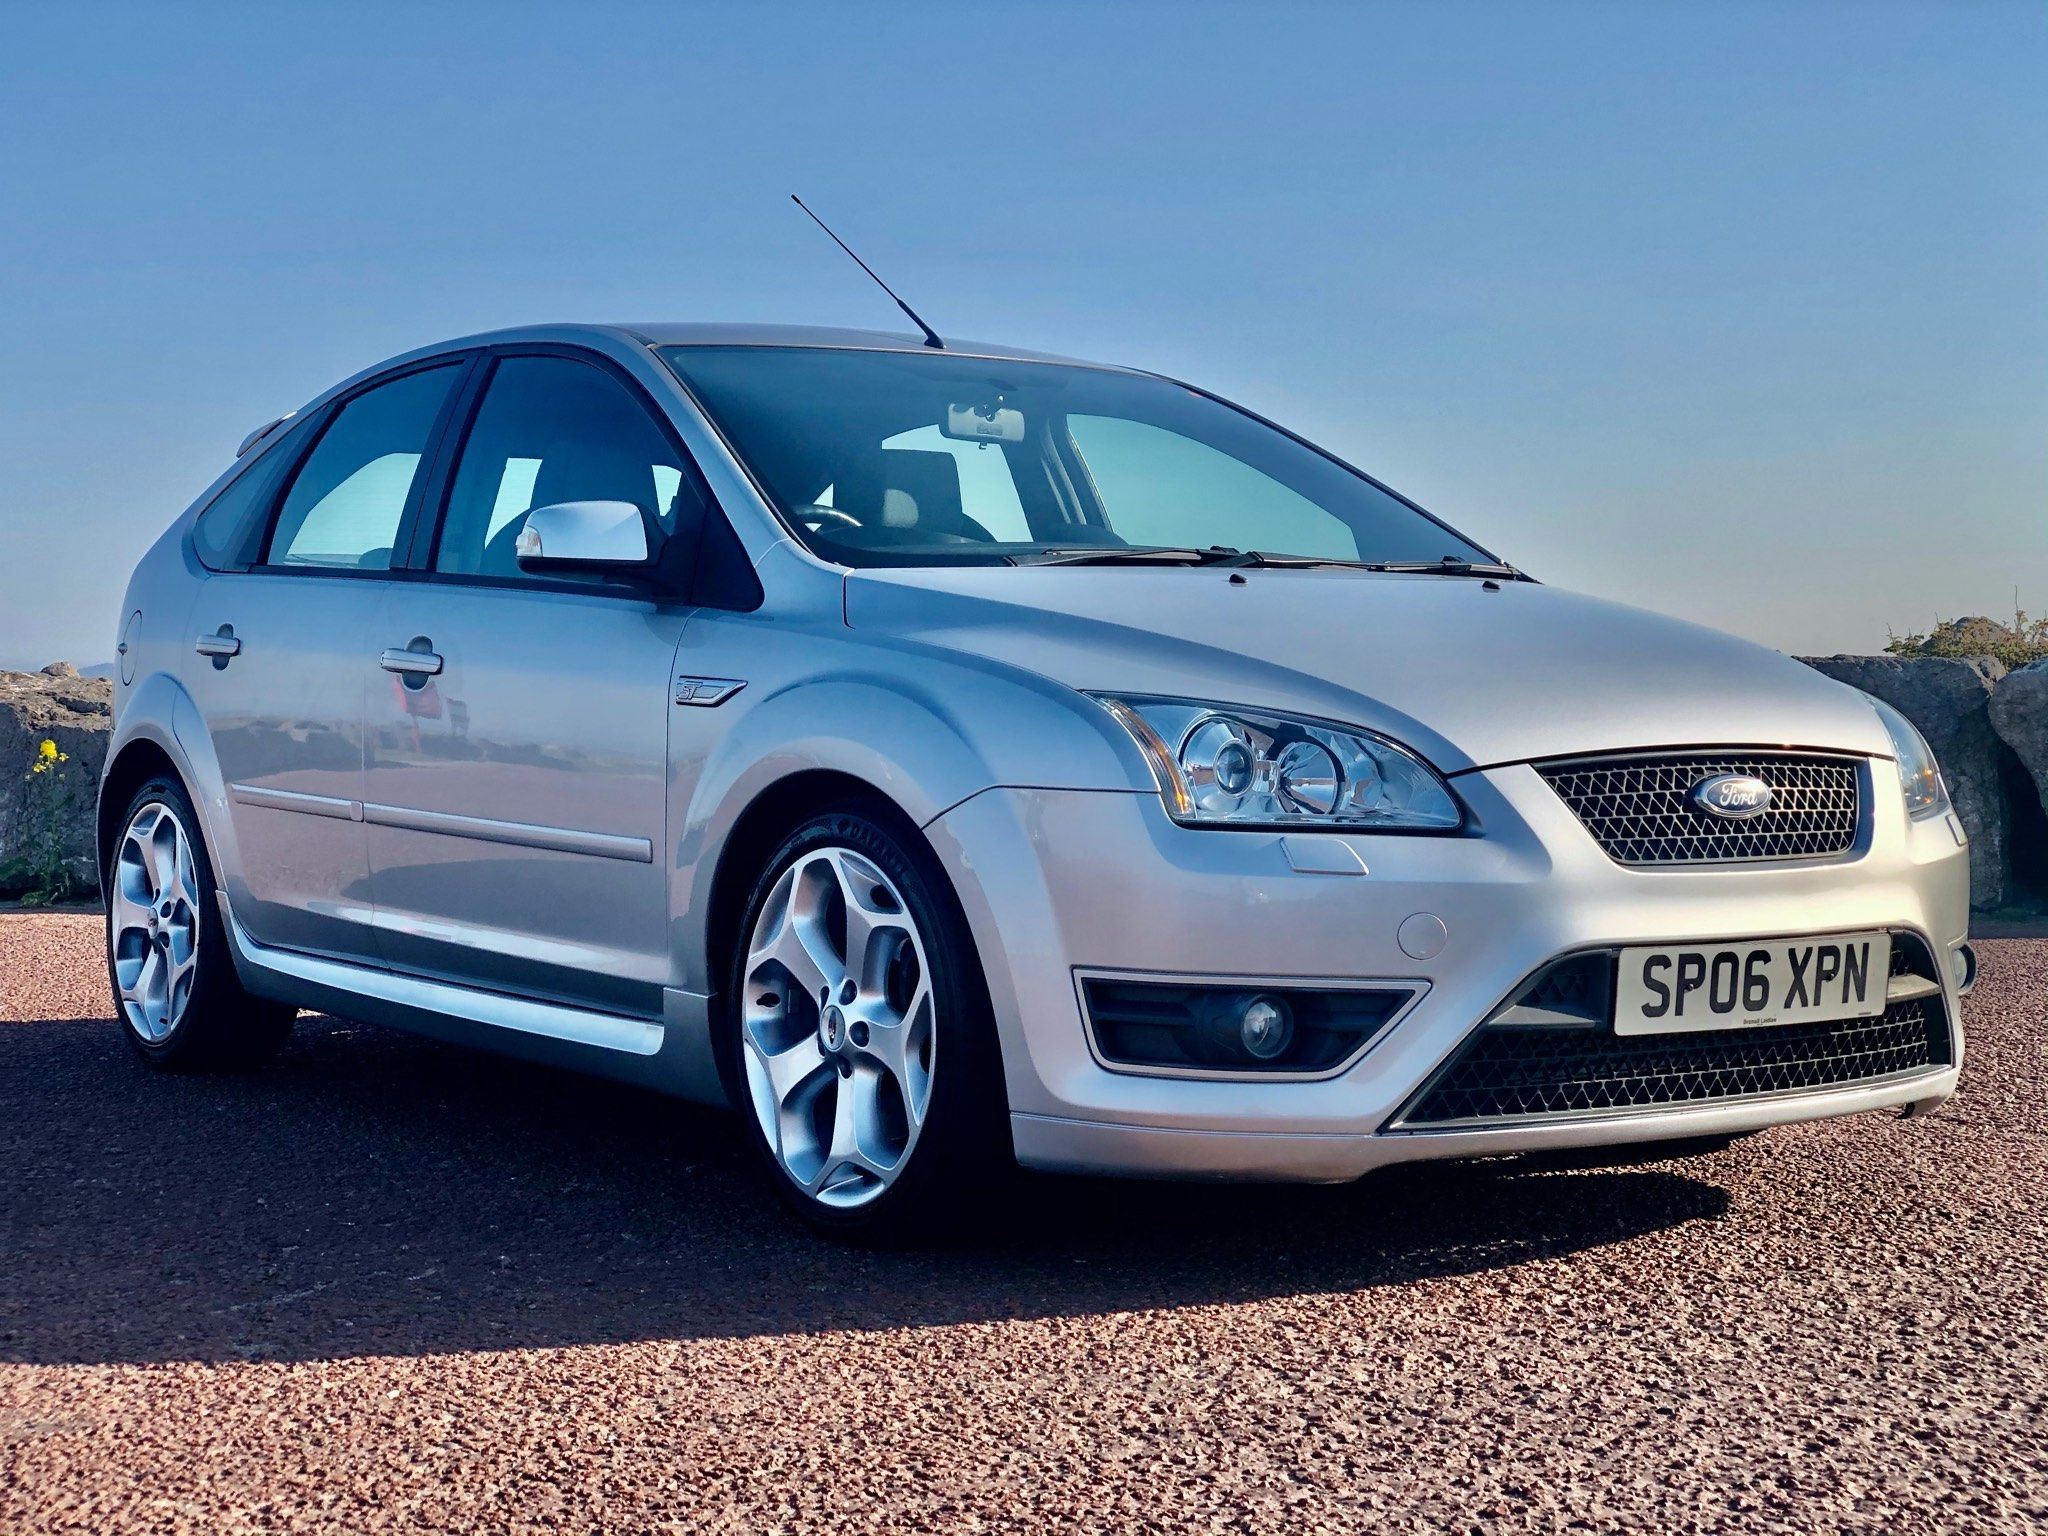 Ford Focus Images